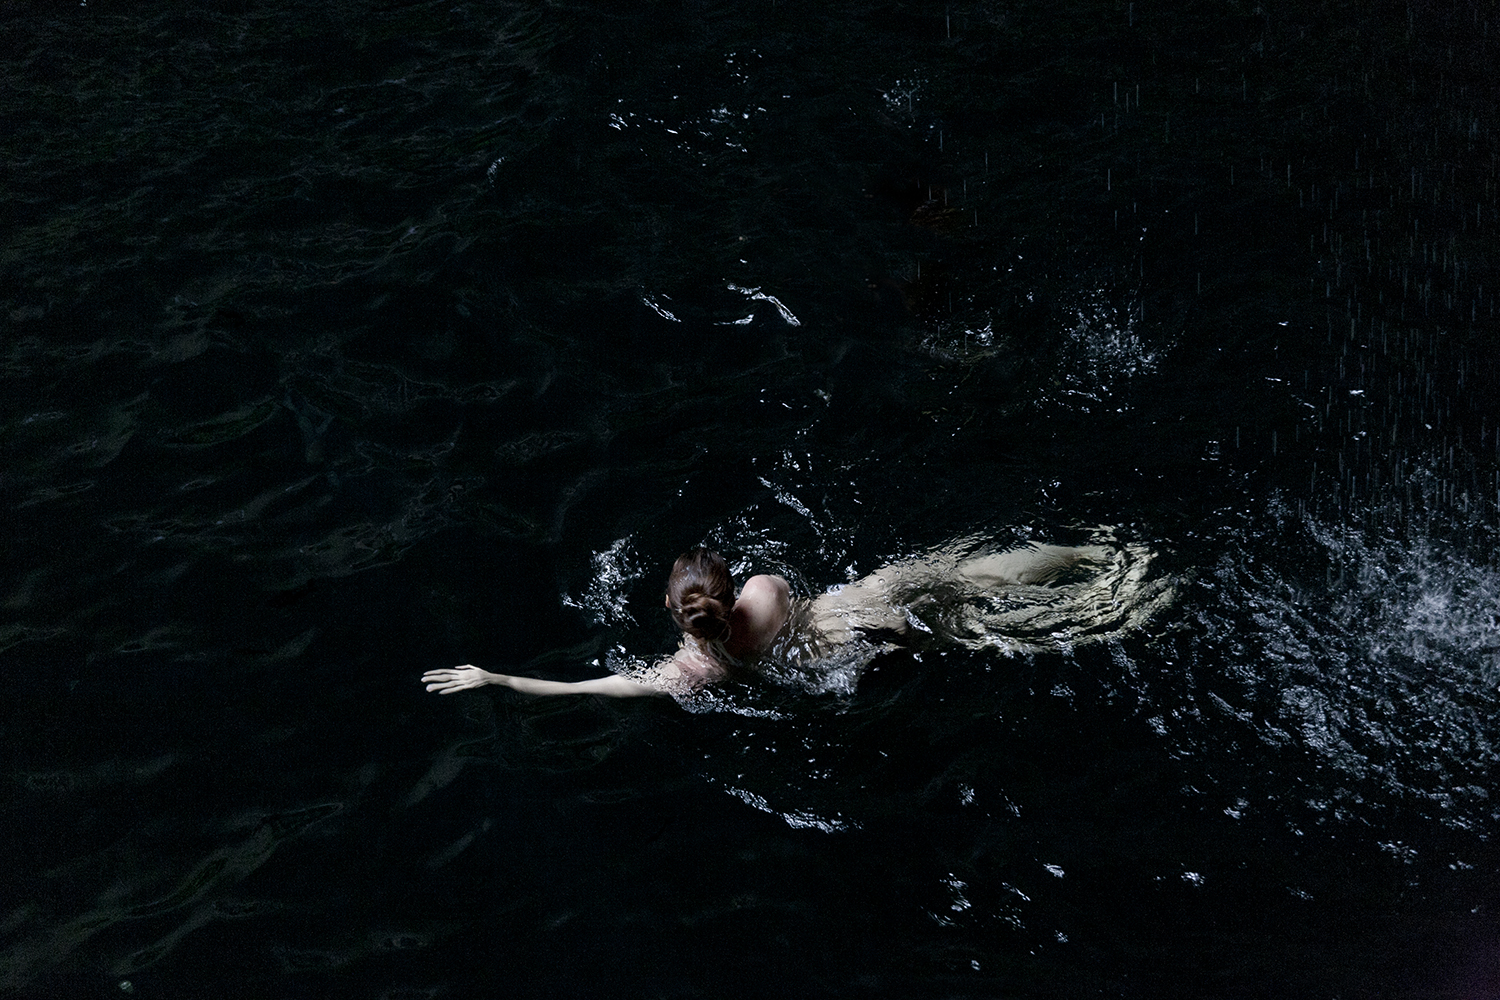 Swim #8229   Francine Fleischer  Archival pigment print 6 x 9 signed and numbered edition of 5 $175